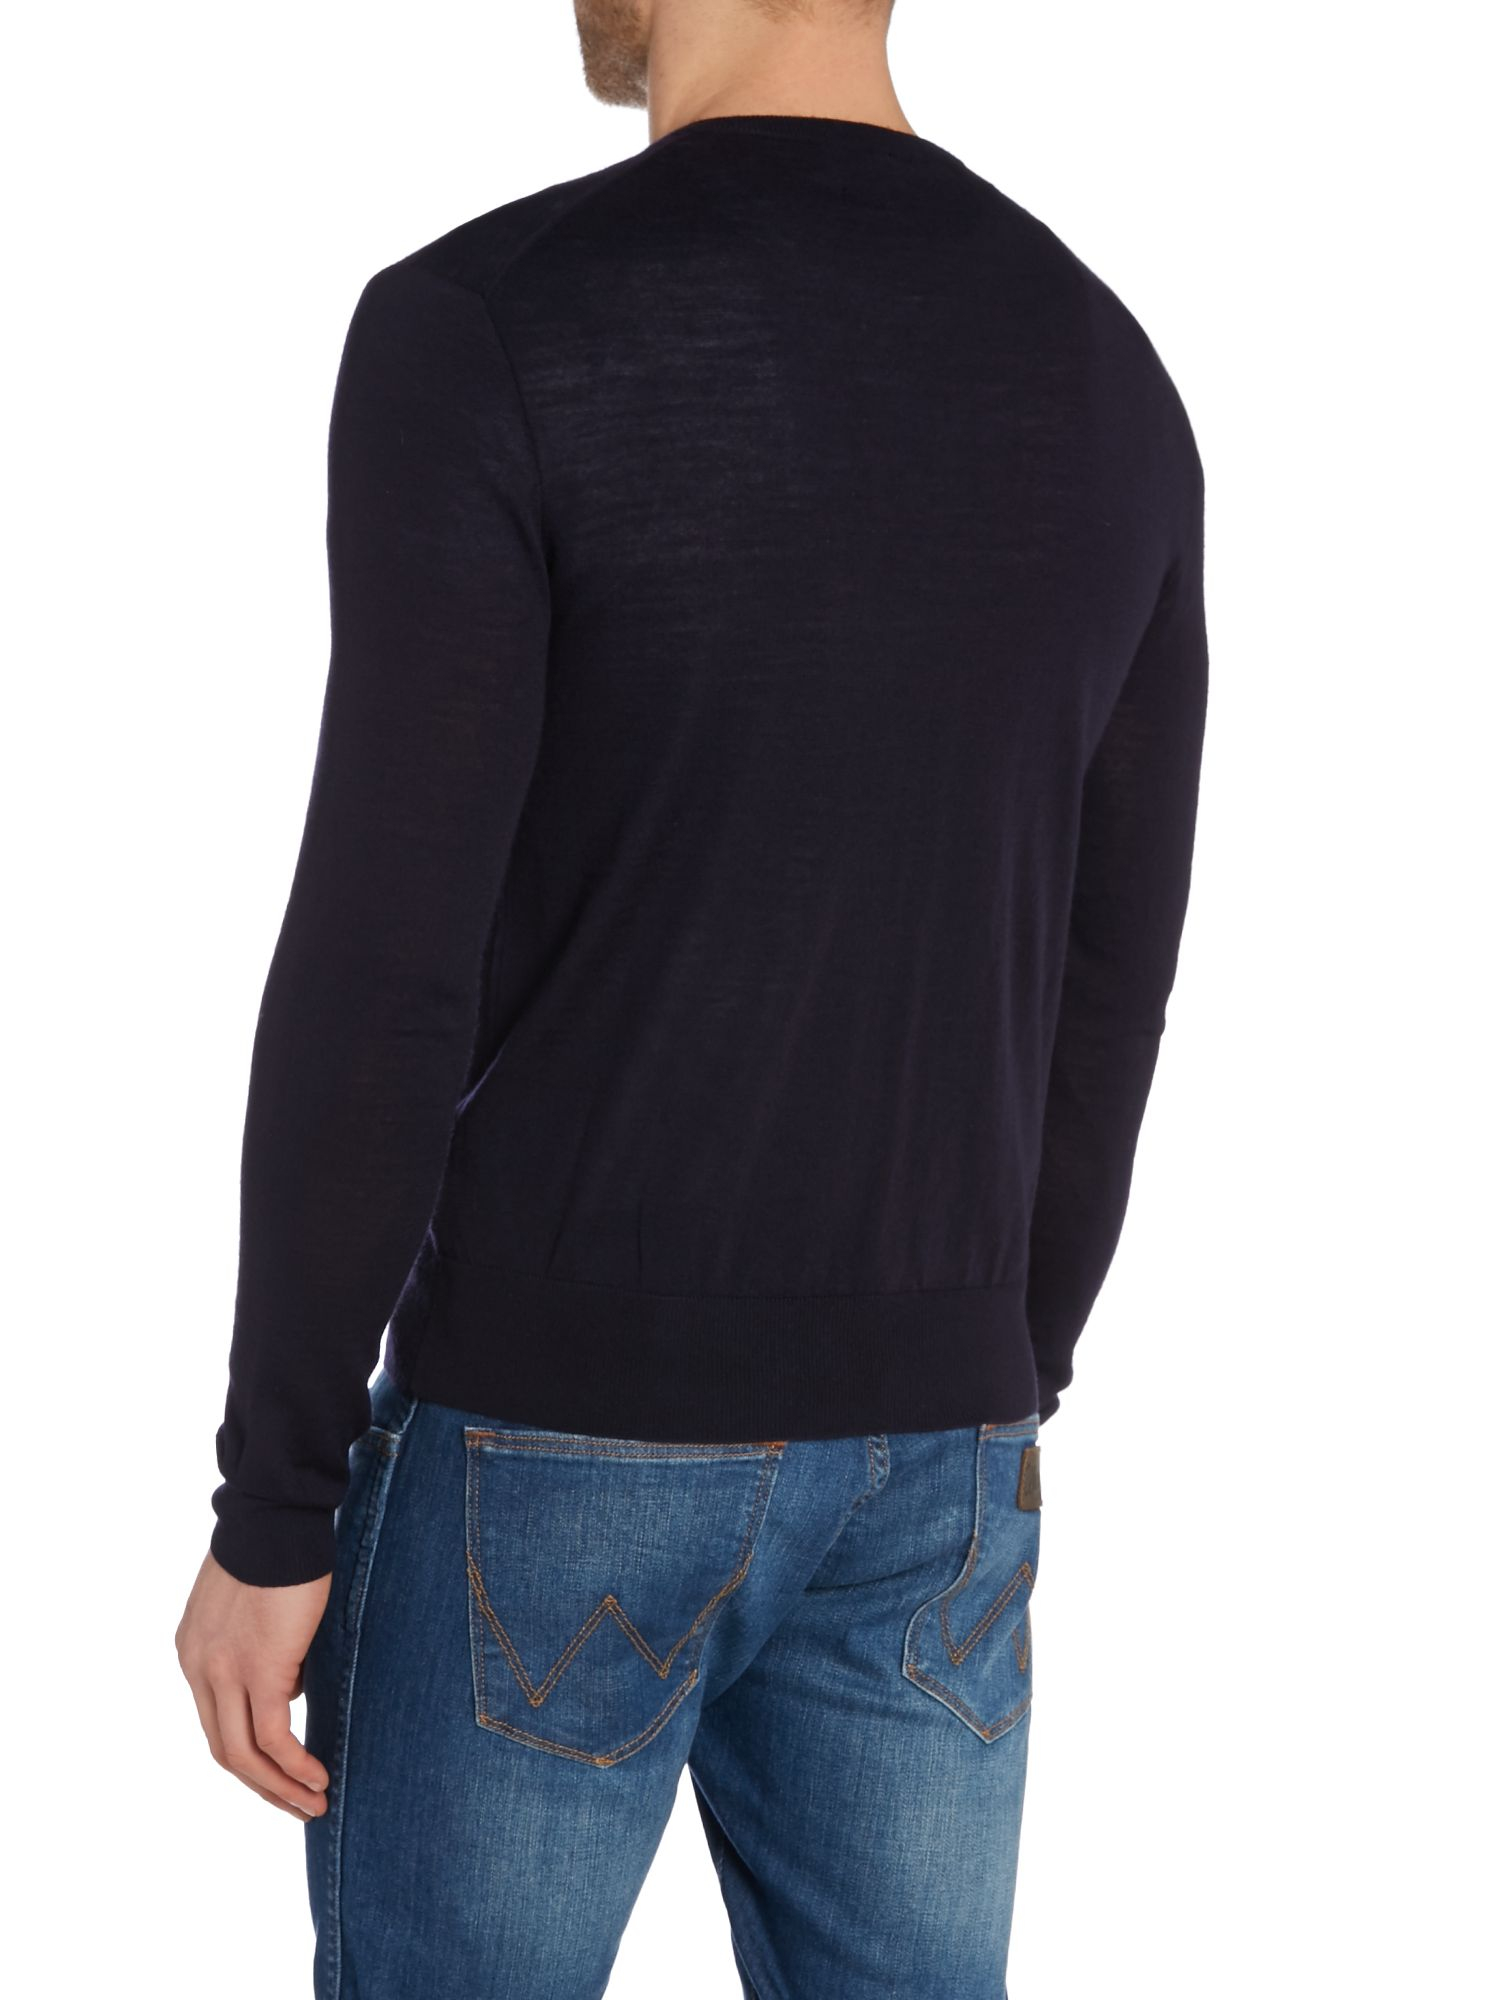 polo ralph lauren blue plain v neck pull over jumper for. Black Bedroom Furniture Sets. Home Design Ideas